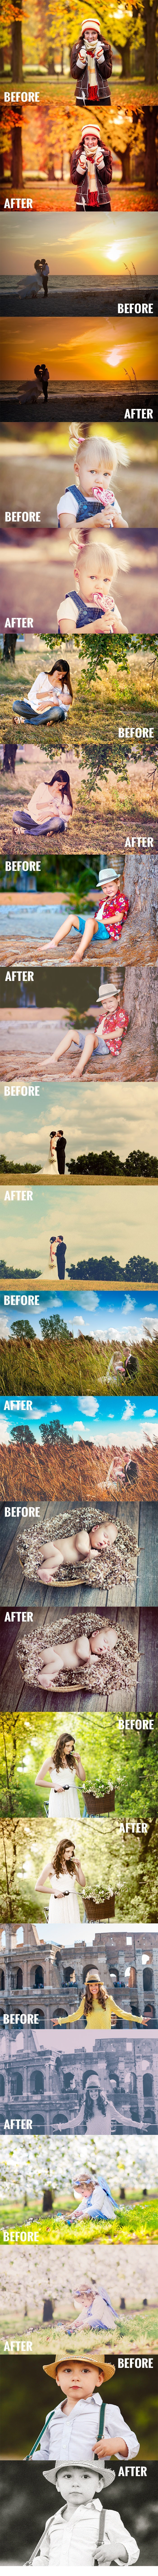 300 Photoshop Actions Preview 2